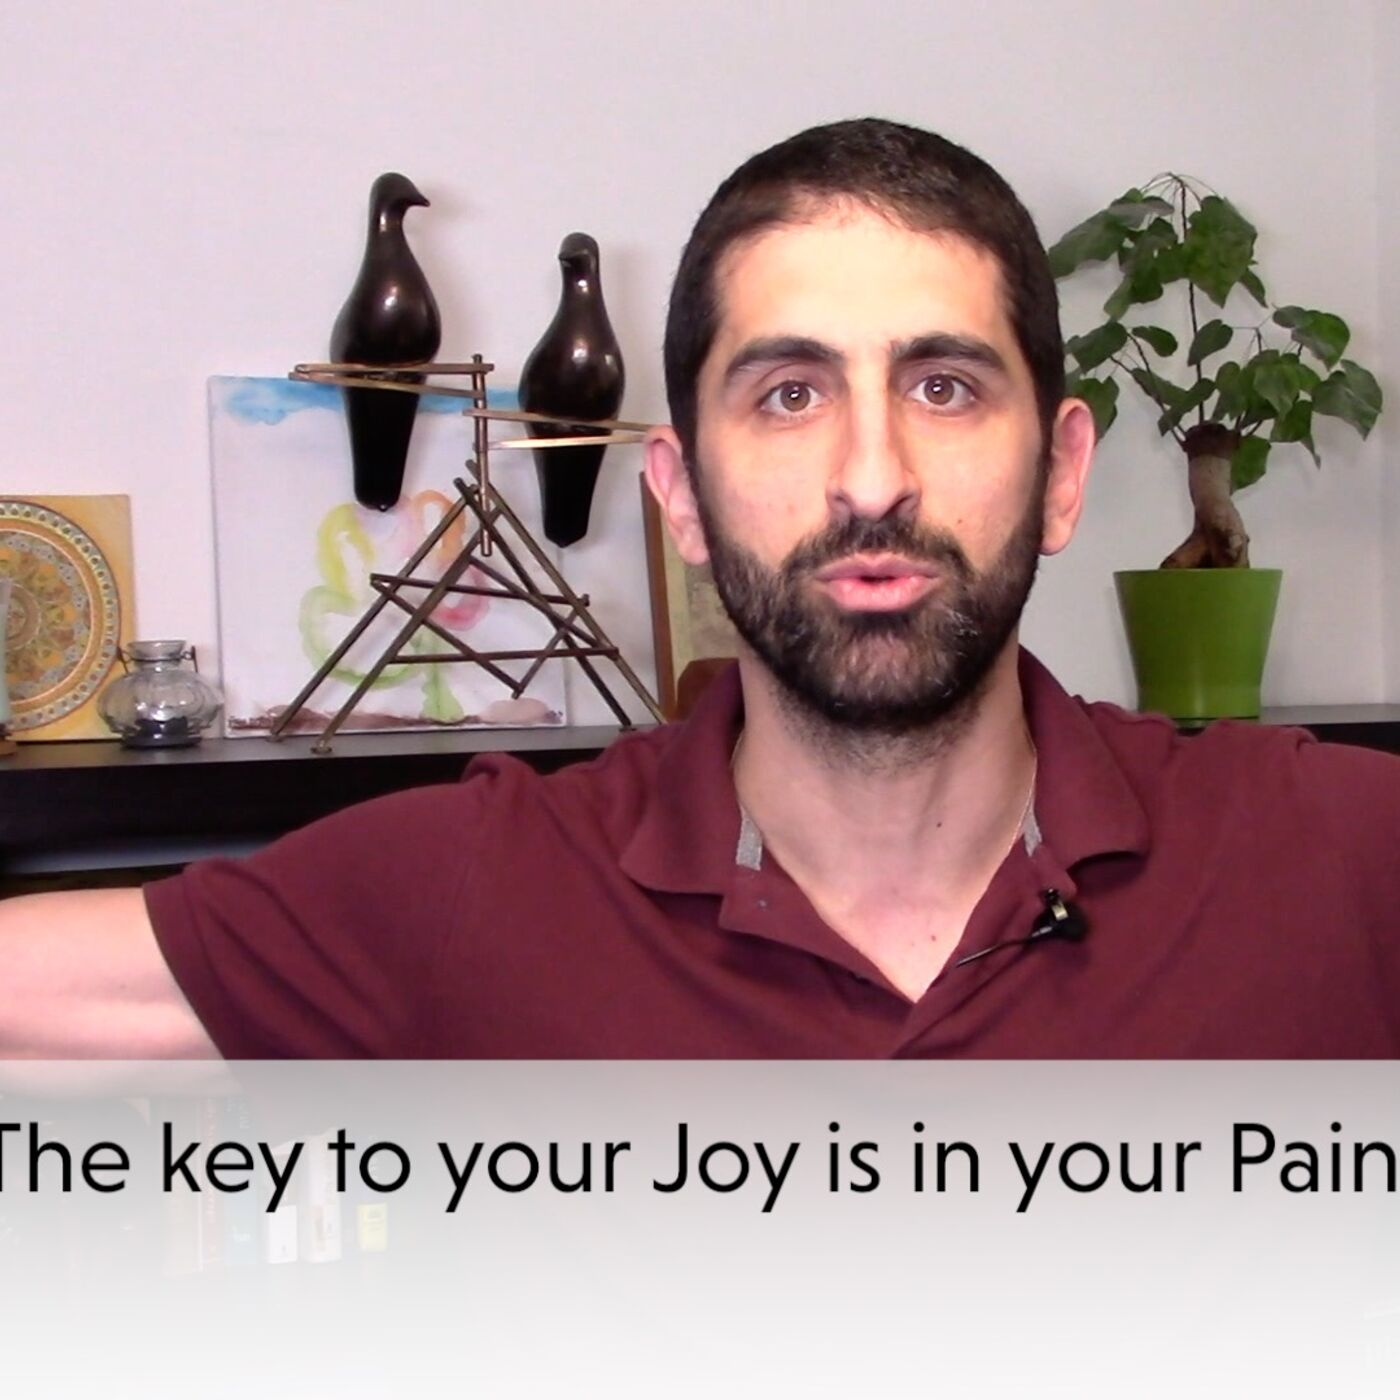 The key to your joy is in your pain.